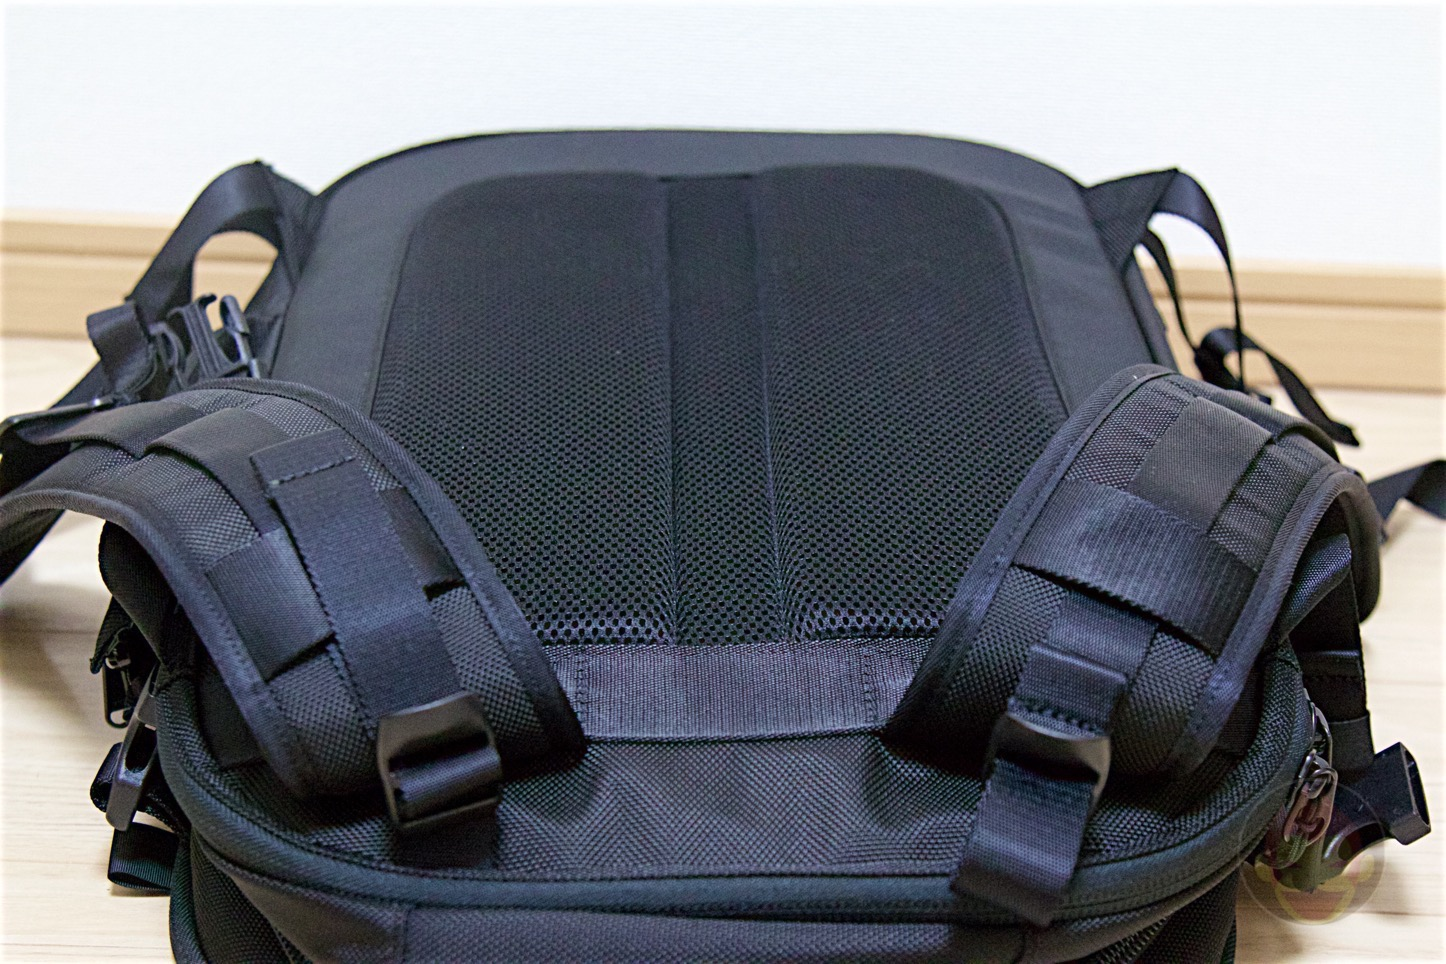 Aer-Travel-BackPack-on-Kickstarter-13.jpg